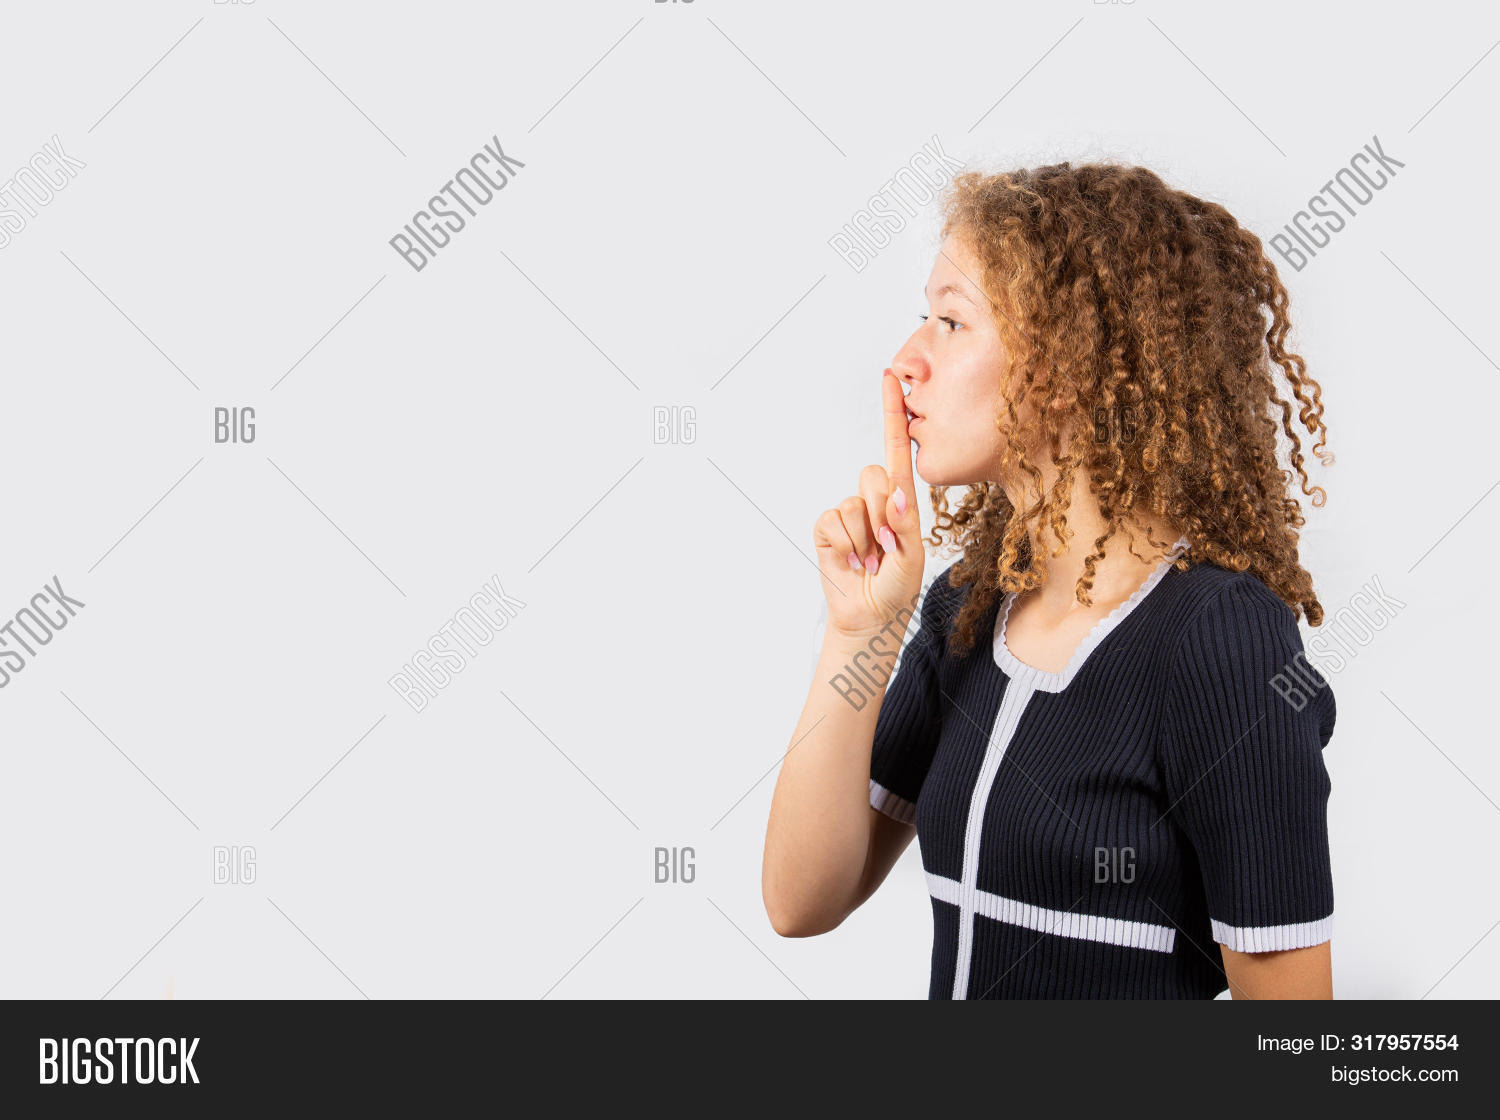 Serious Young Girl Image Photo Free Trial Bigstock